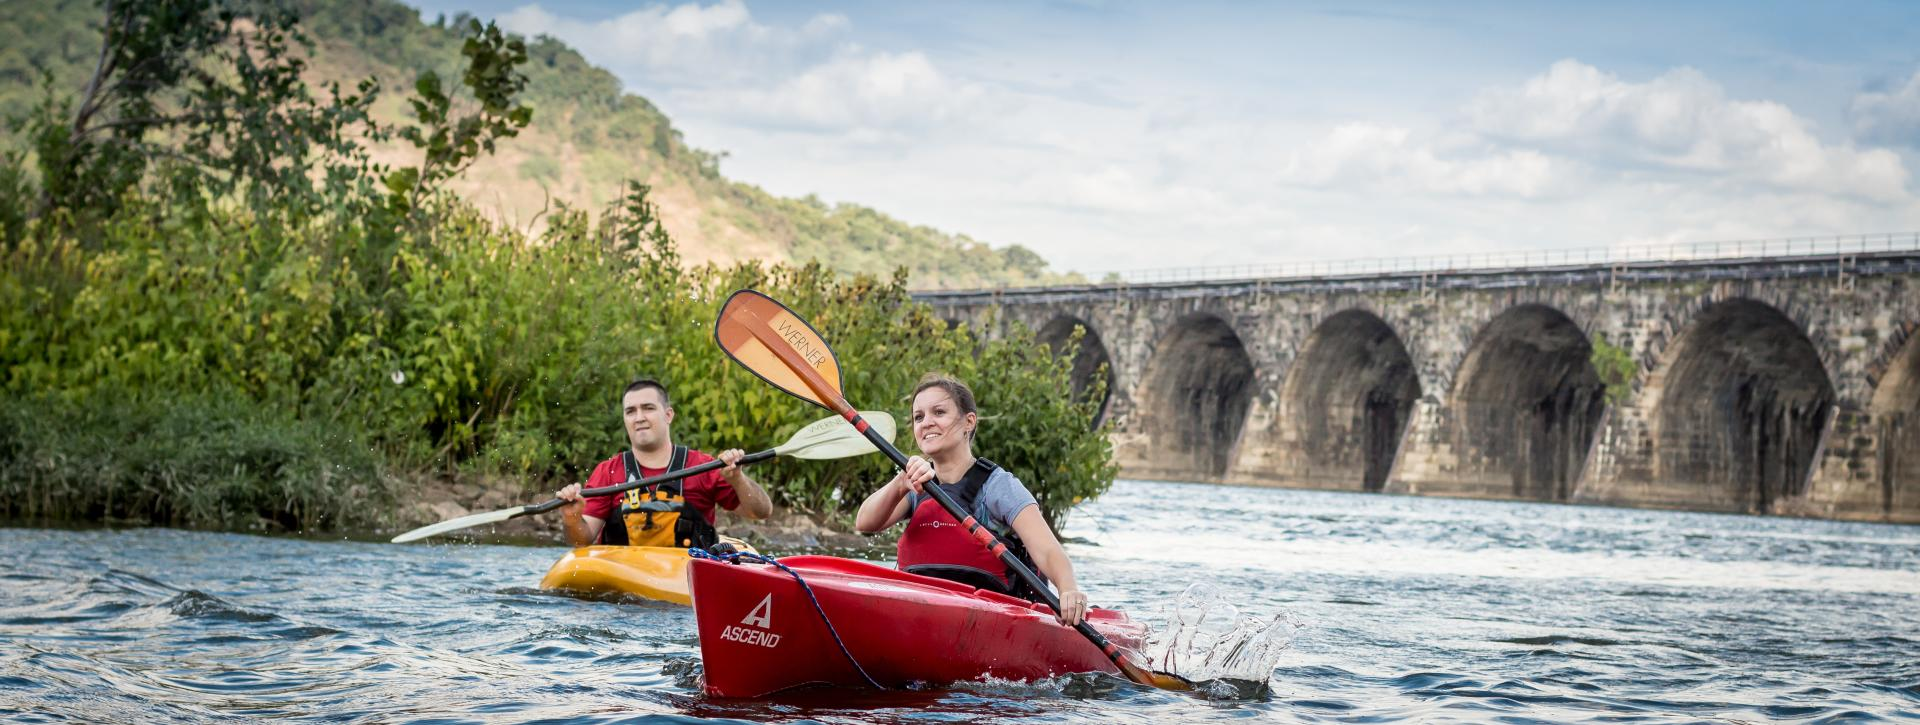 kayaking-harrisburg-susquehanna-river-rockville-bridge-outdoor-adventure